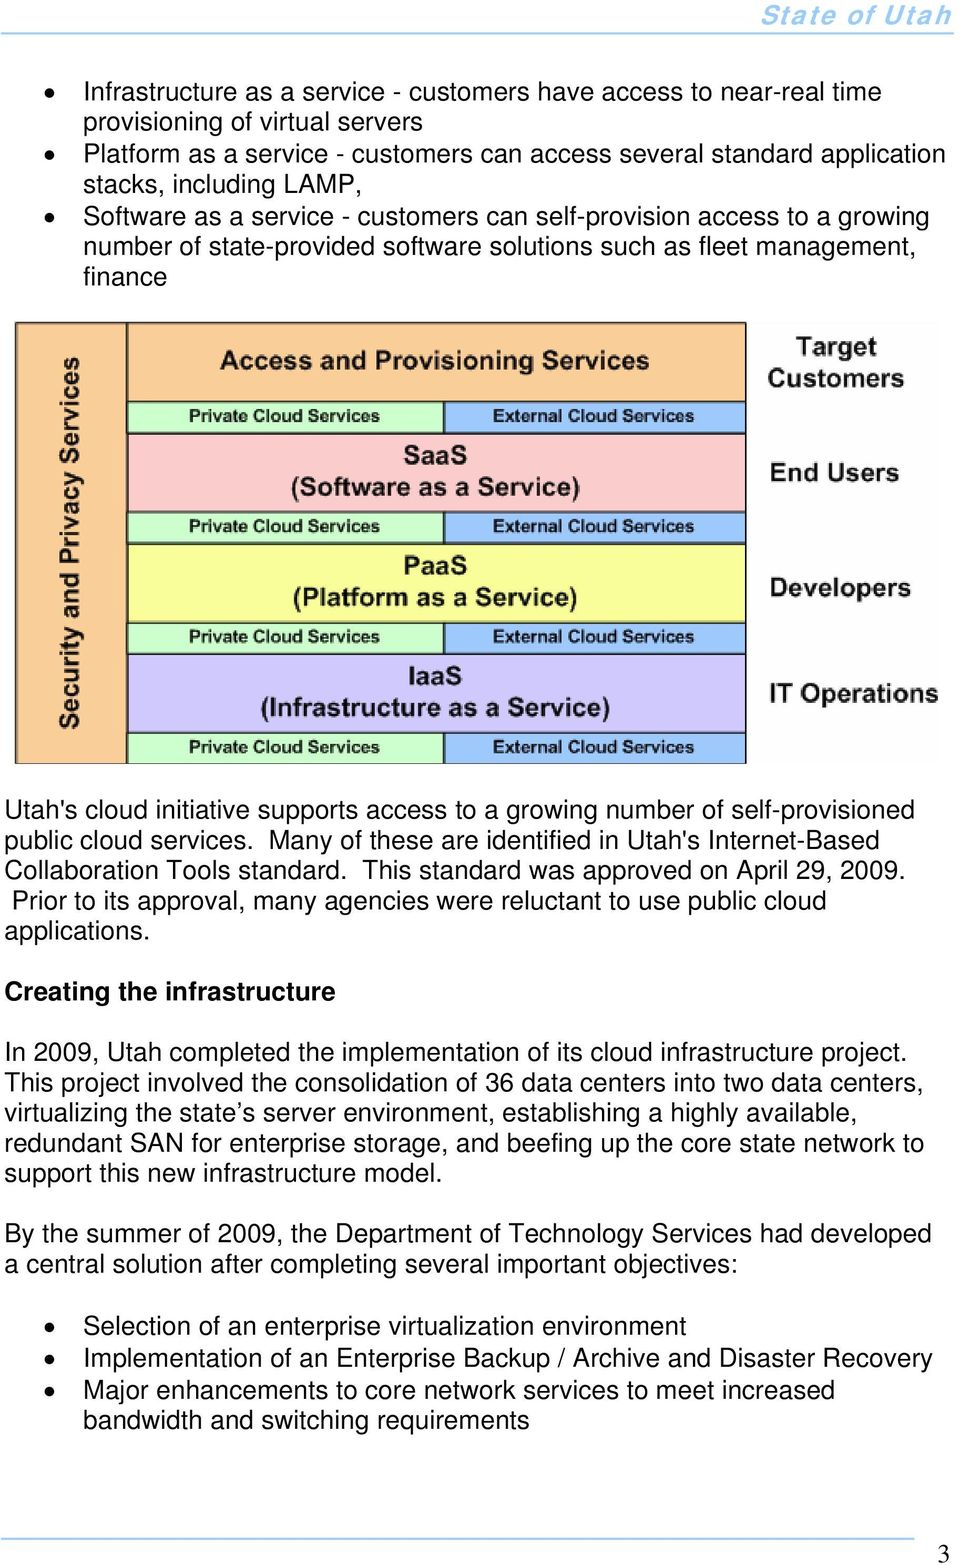 growing number of self-provisioned public cloud services. Many of these are identified in Utah's Internet-Based Collaboration Tools standard. This standard was approved on April 29, 2009.